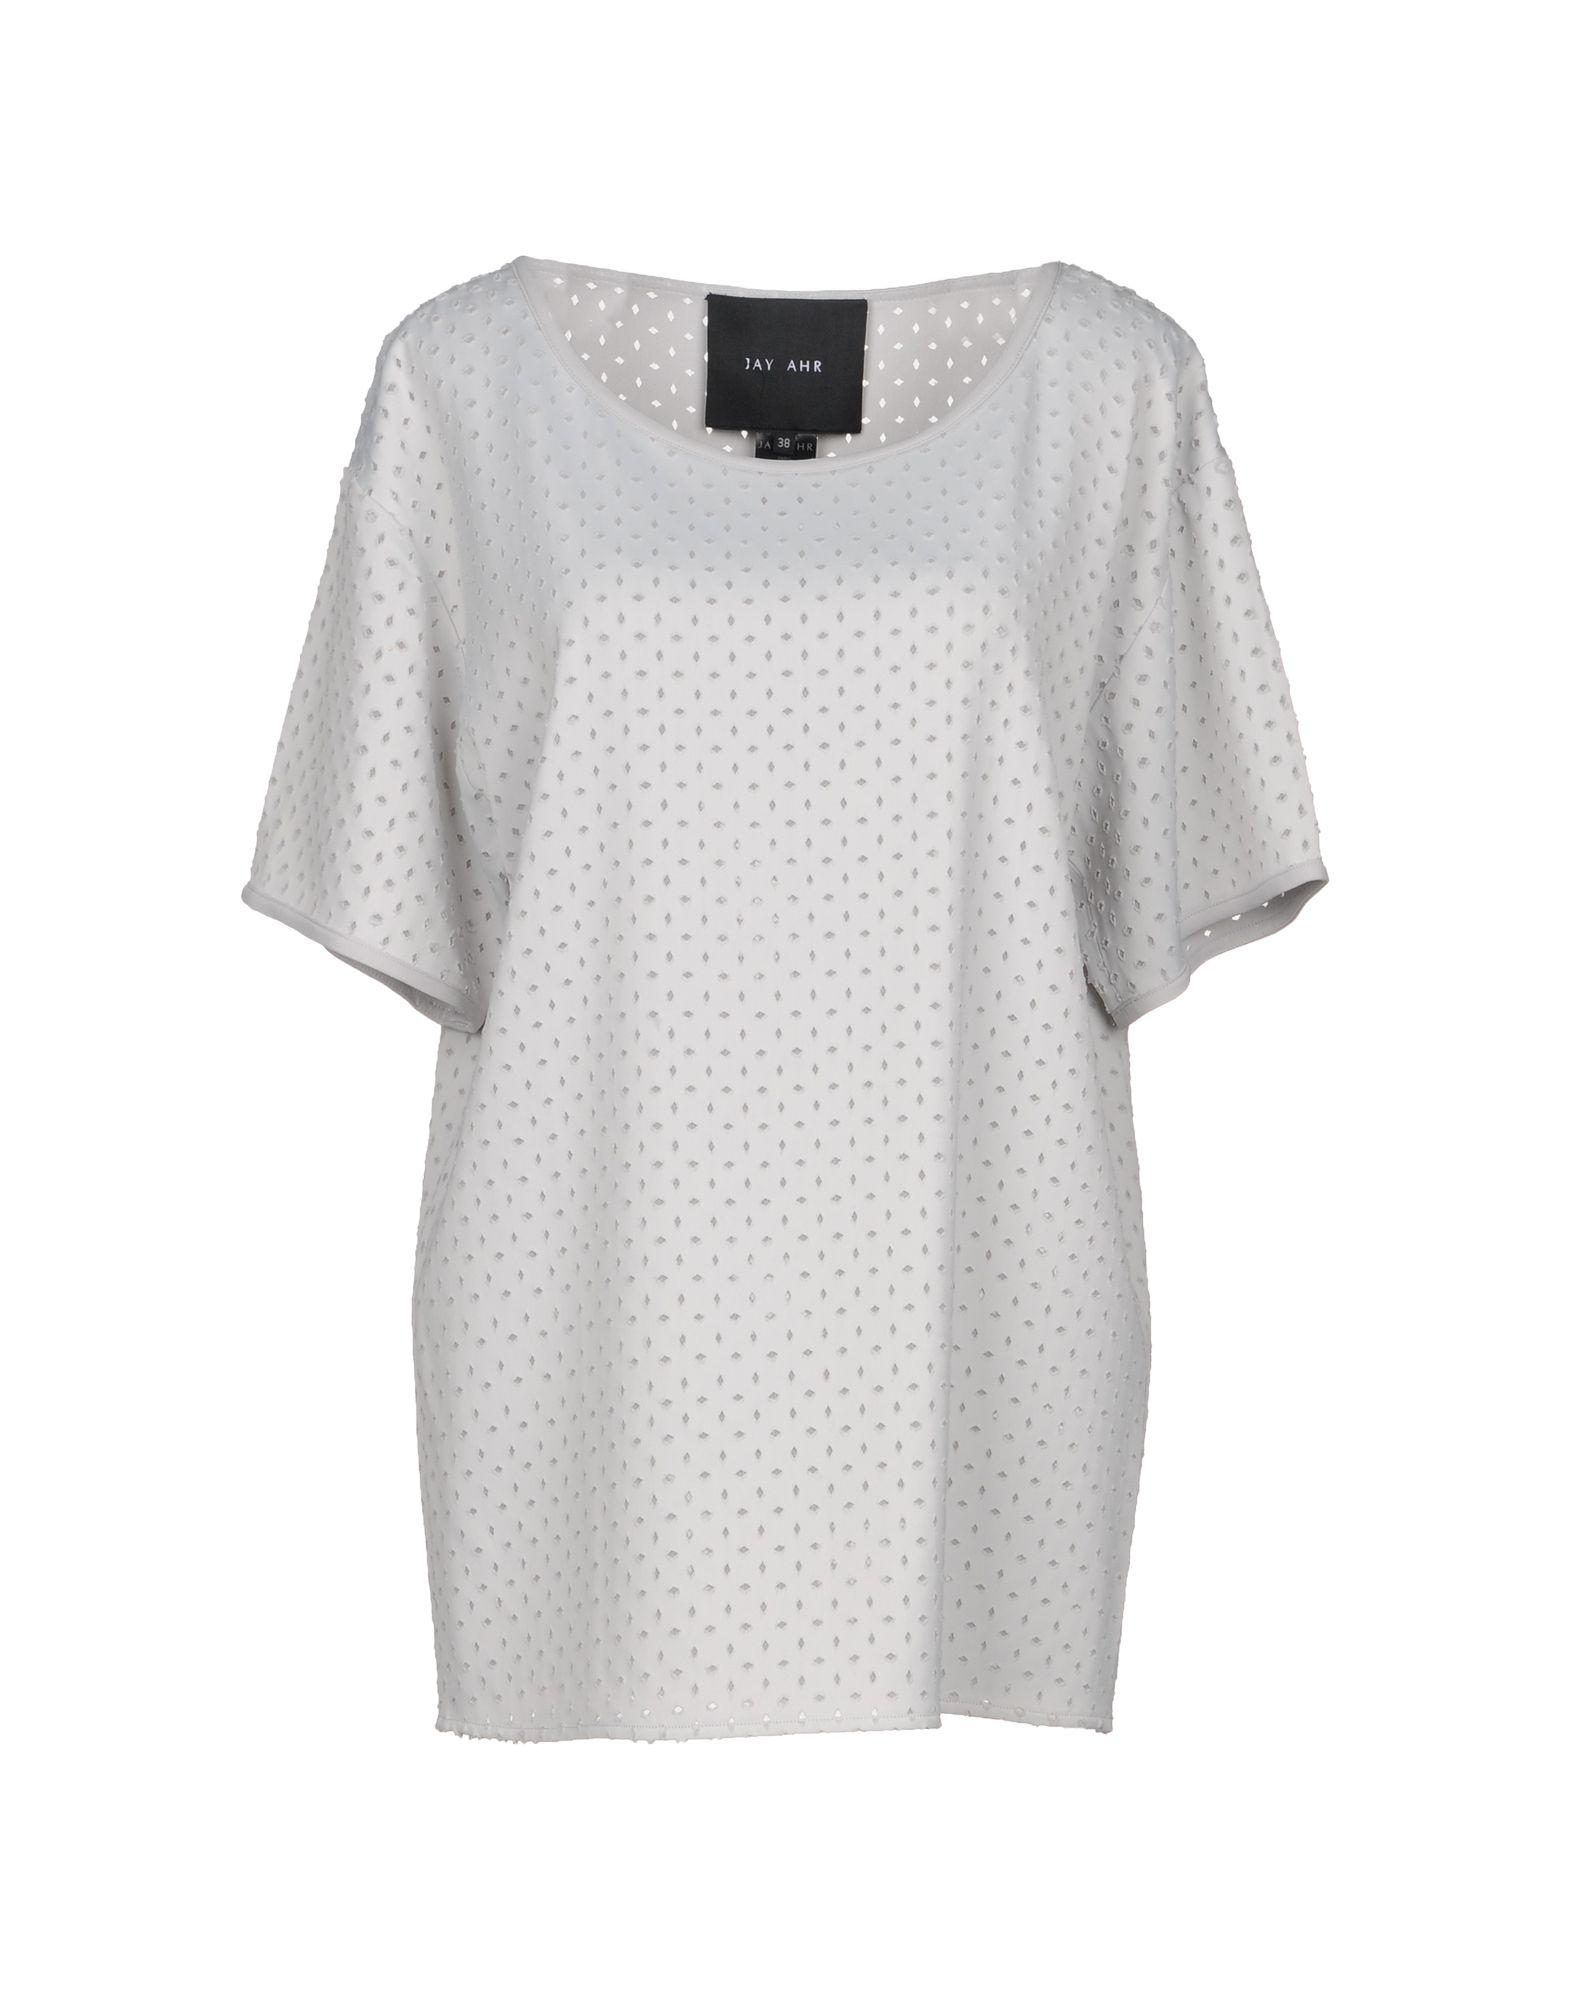 SHIRTS - Blouses Jay Ahr Shop For Cheap Online Buy Cheap Cost Free Shipping Shopping Online Cheap Sale Shopping Online For Nice Cheap Online nVinTzBb